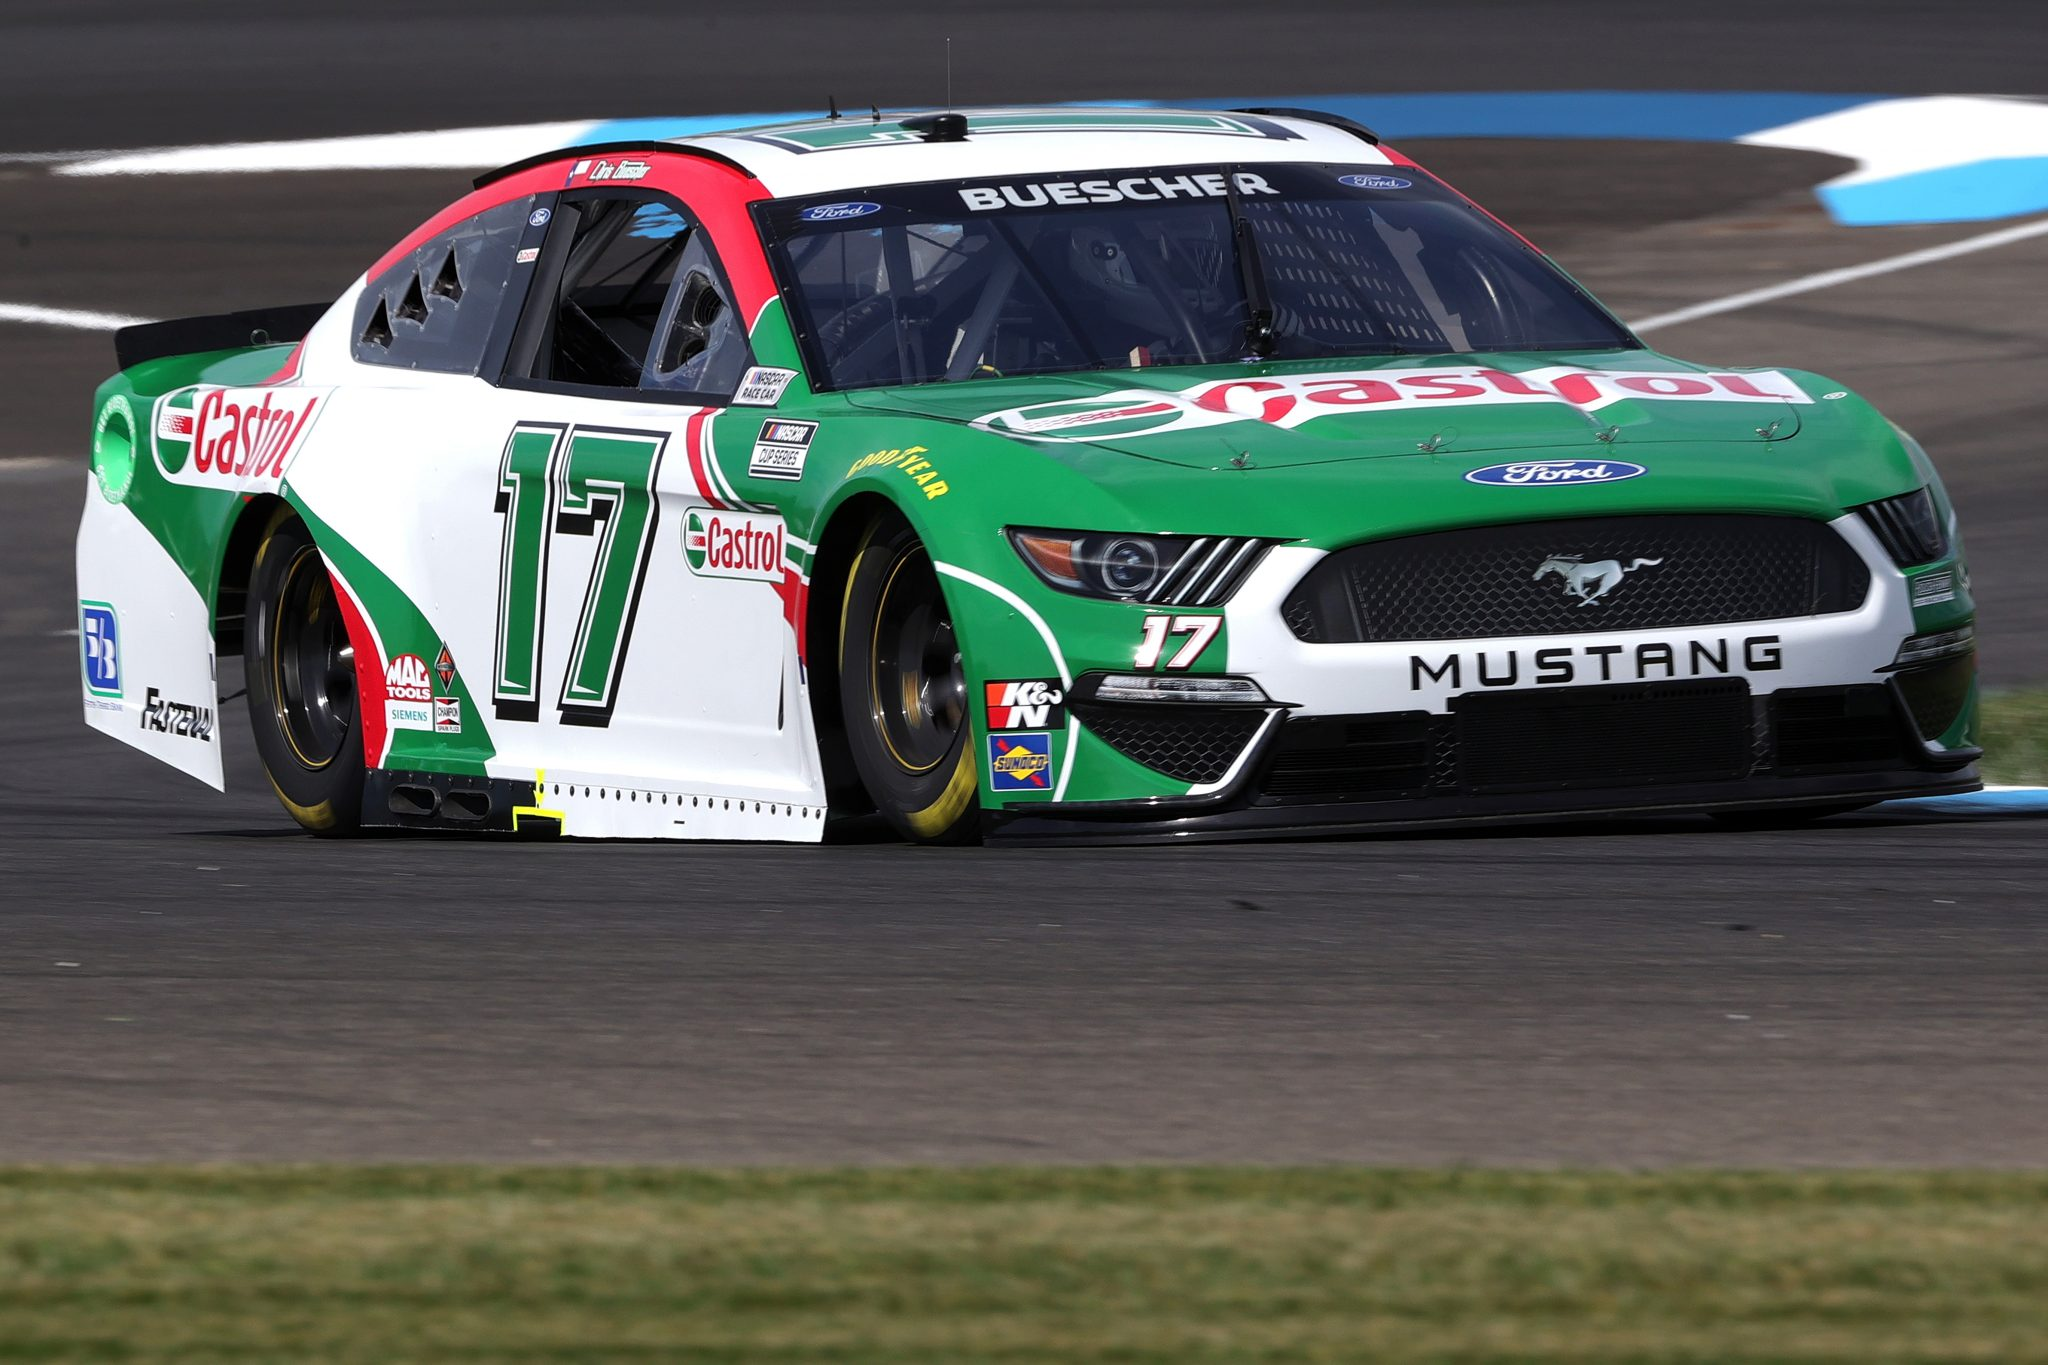 INDIANAPOLIS, INDIANA - AUGUST 14: Chris Buescher, driver of the #17 Castrol Ford, drives during practice for the NASCAR Cup Series Verizon 200 at the Brickyard at Indianapolis Motor Speedway on August 14, 2021 in Indianapolis, Indiana. (Photo by Stacy Revere/Getty Images) | Getty Images